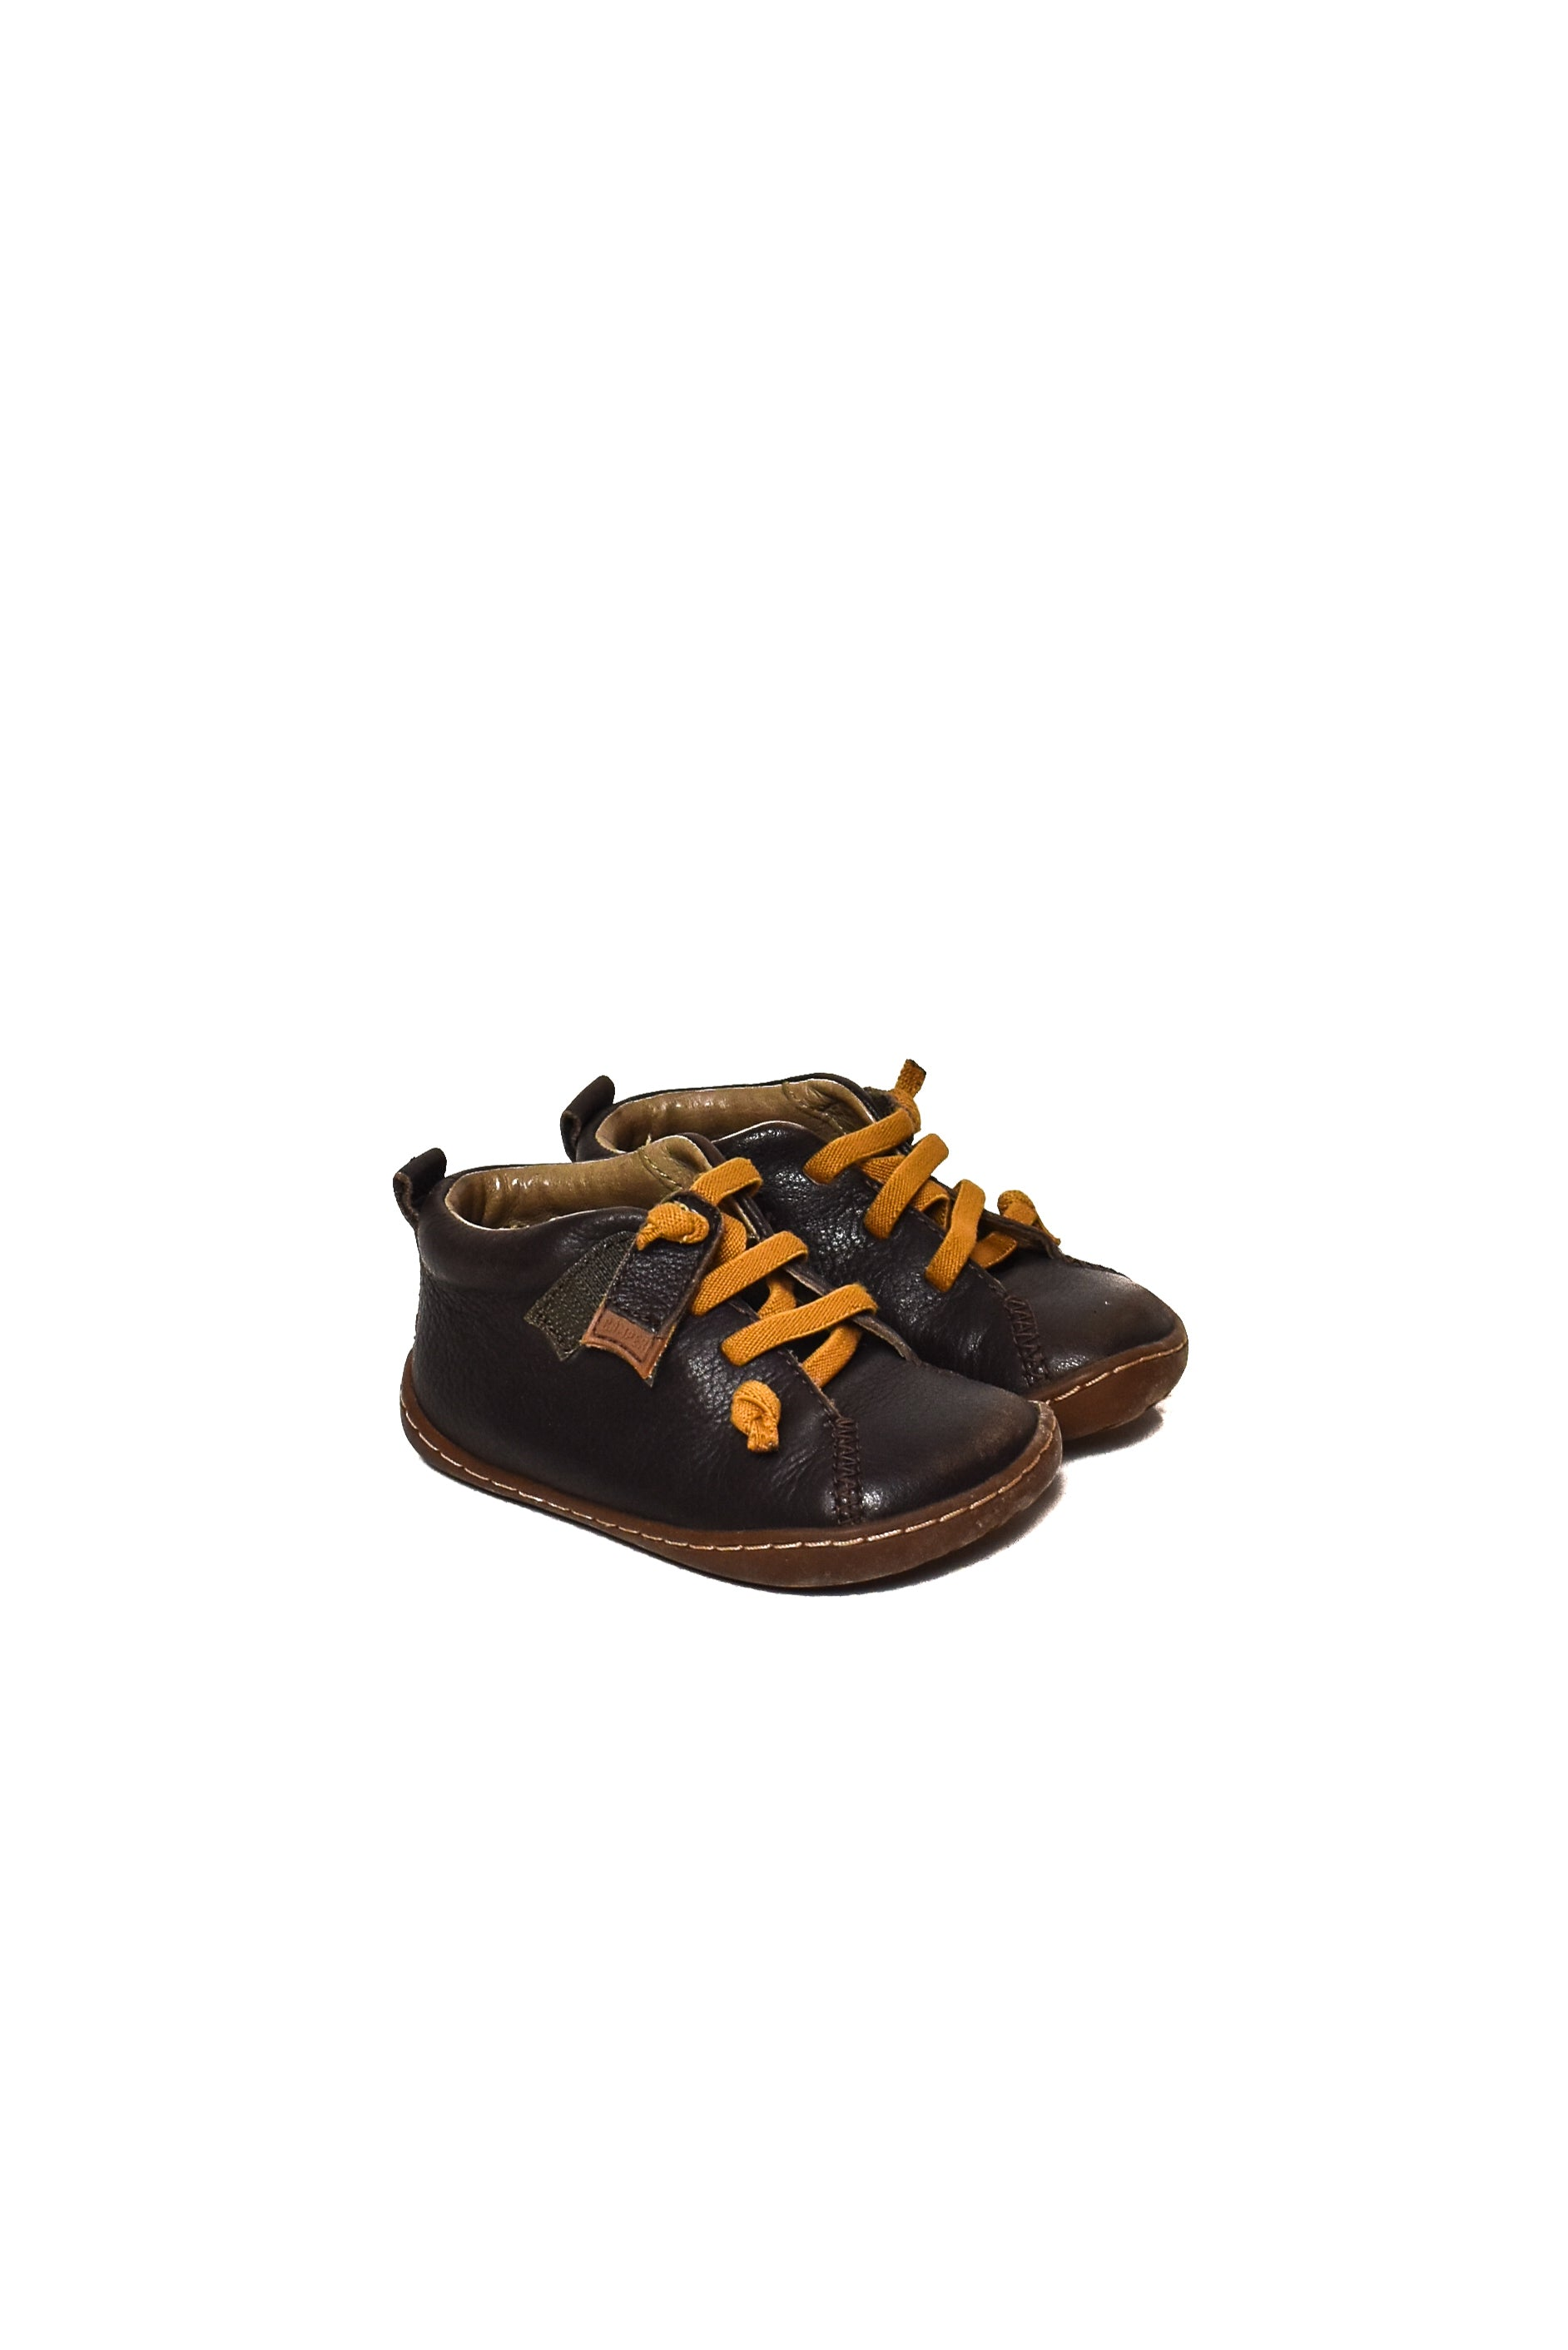 10007762 Camper Baby~ Shoes 18-24M (EU 22) at Retykle